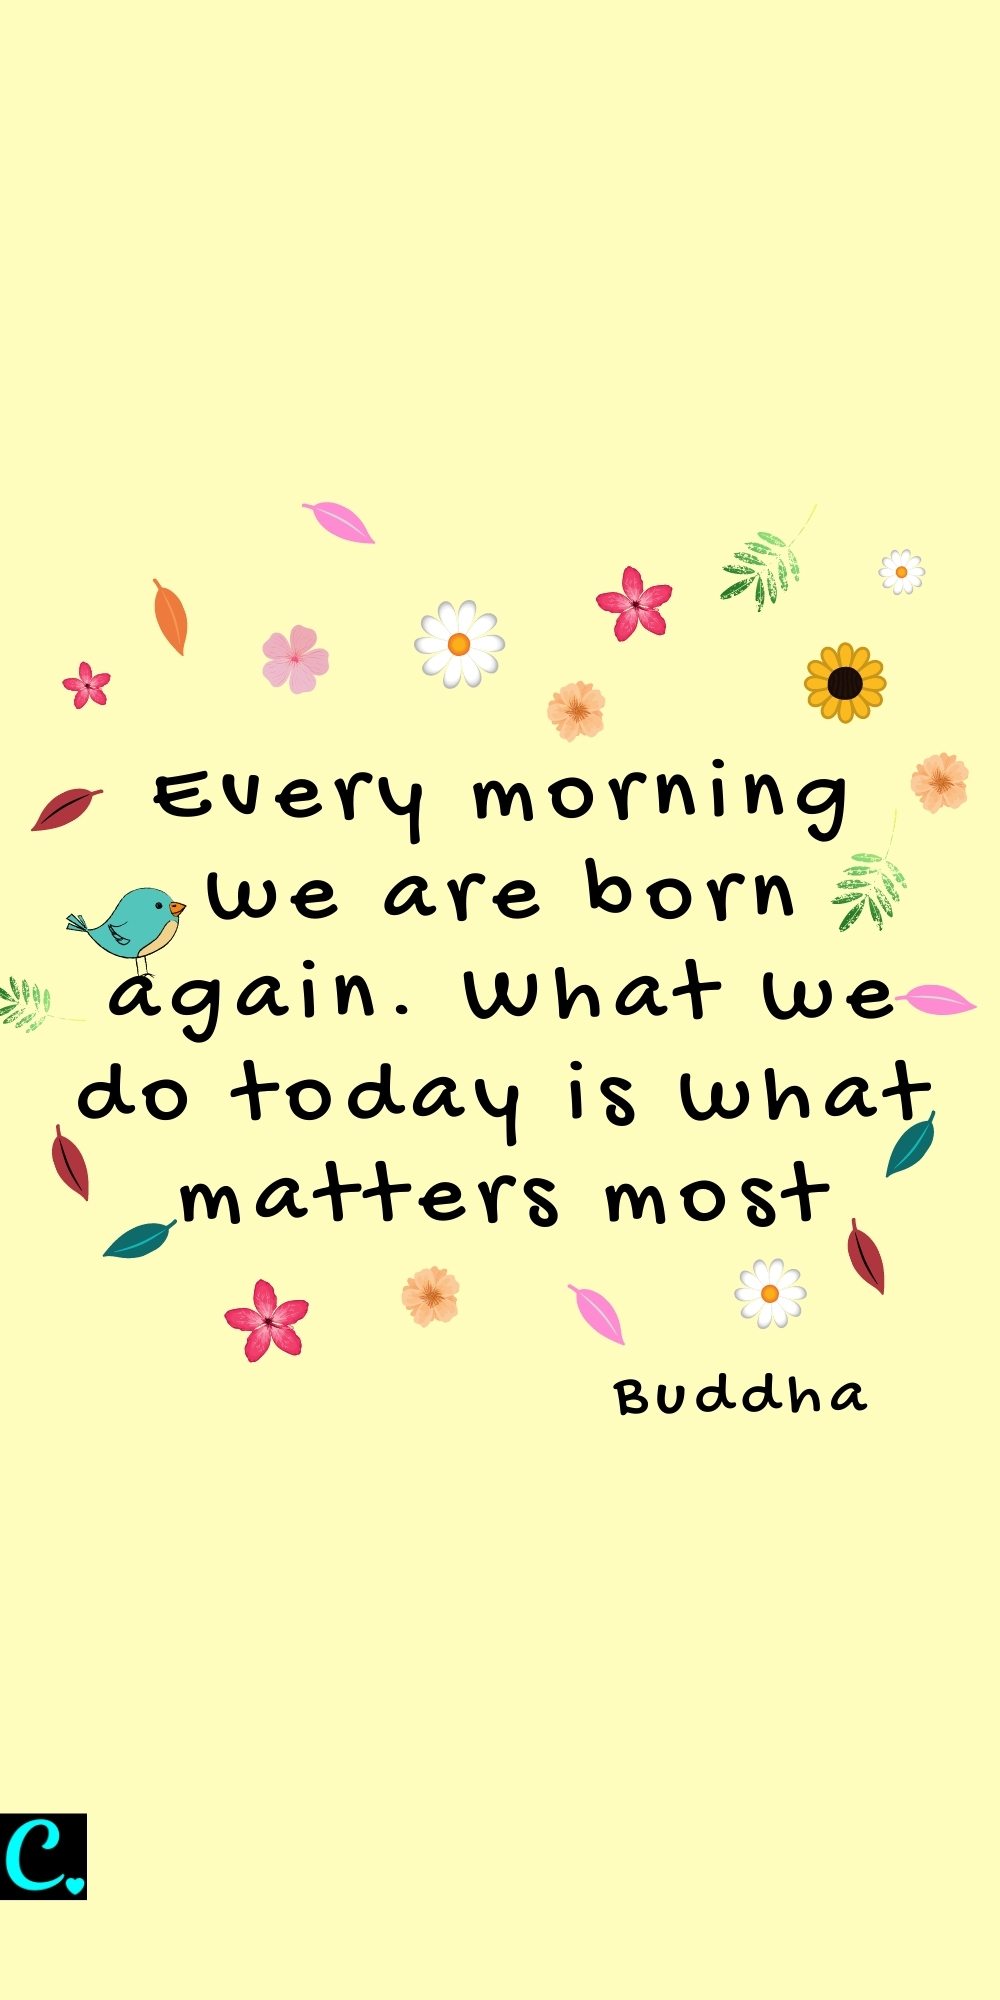 Every morning we are born again. What we do today is what matters most #morningquote